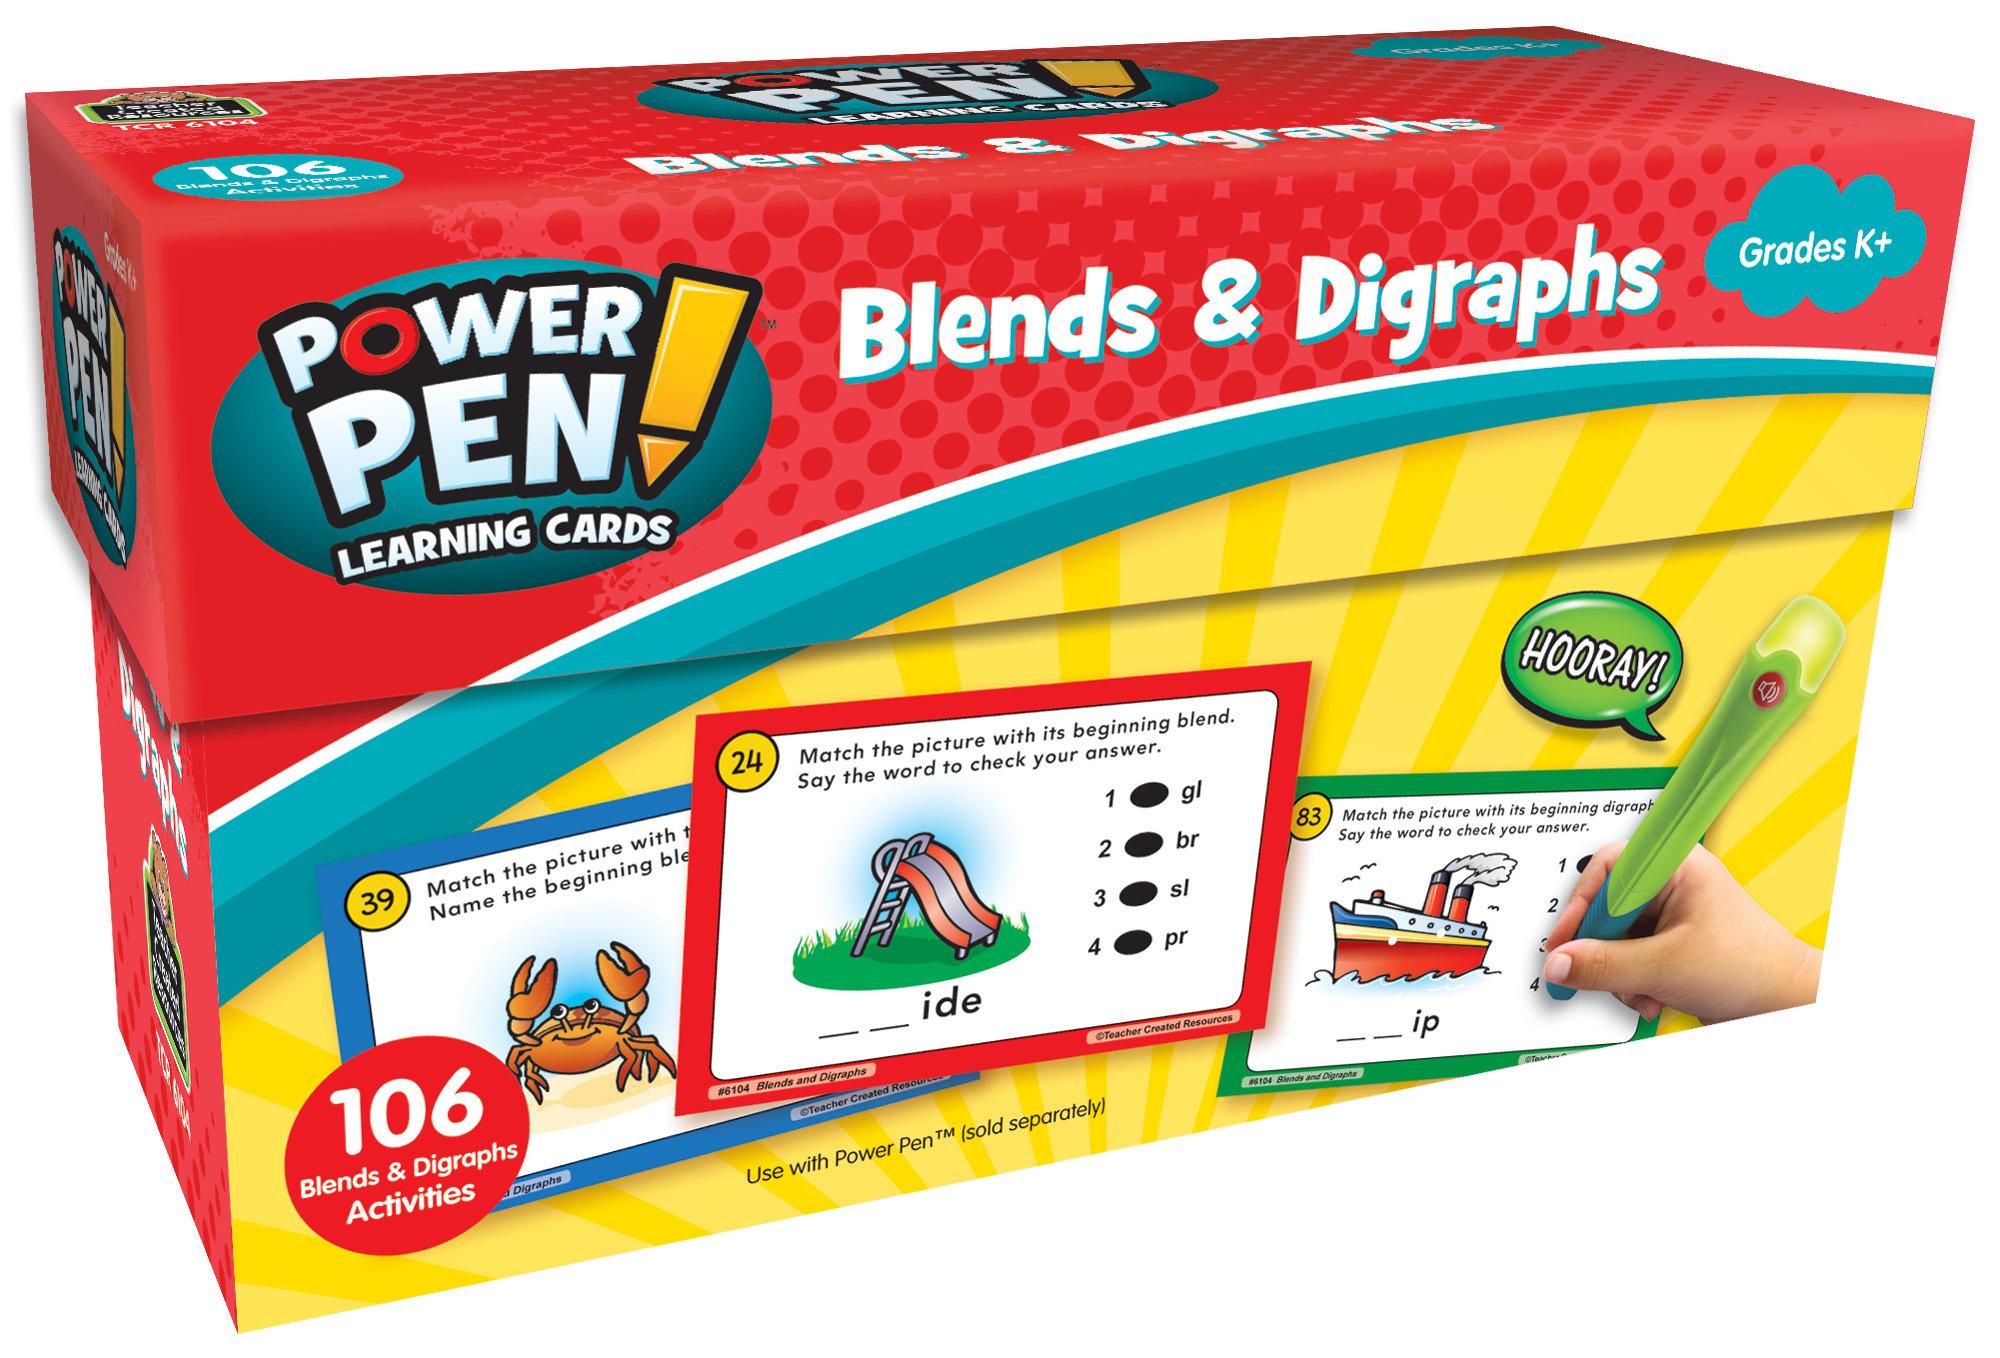 Power Pen¬ Learning Cards: Blends & Digraphs